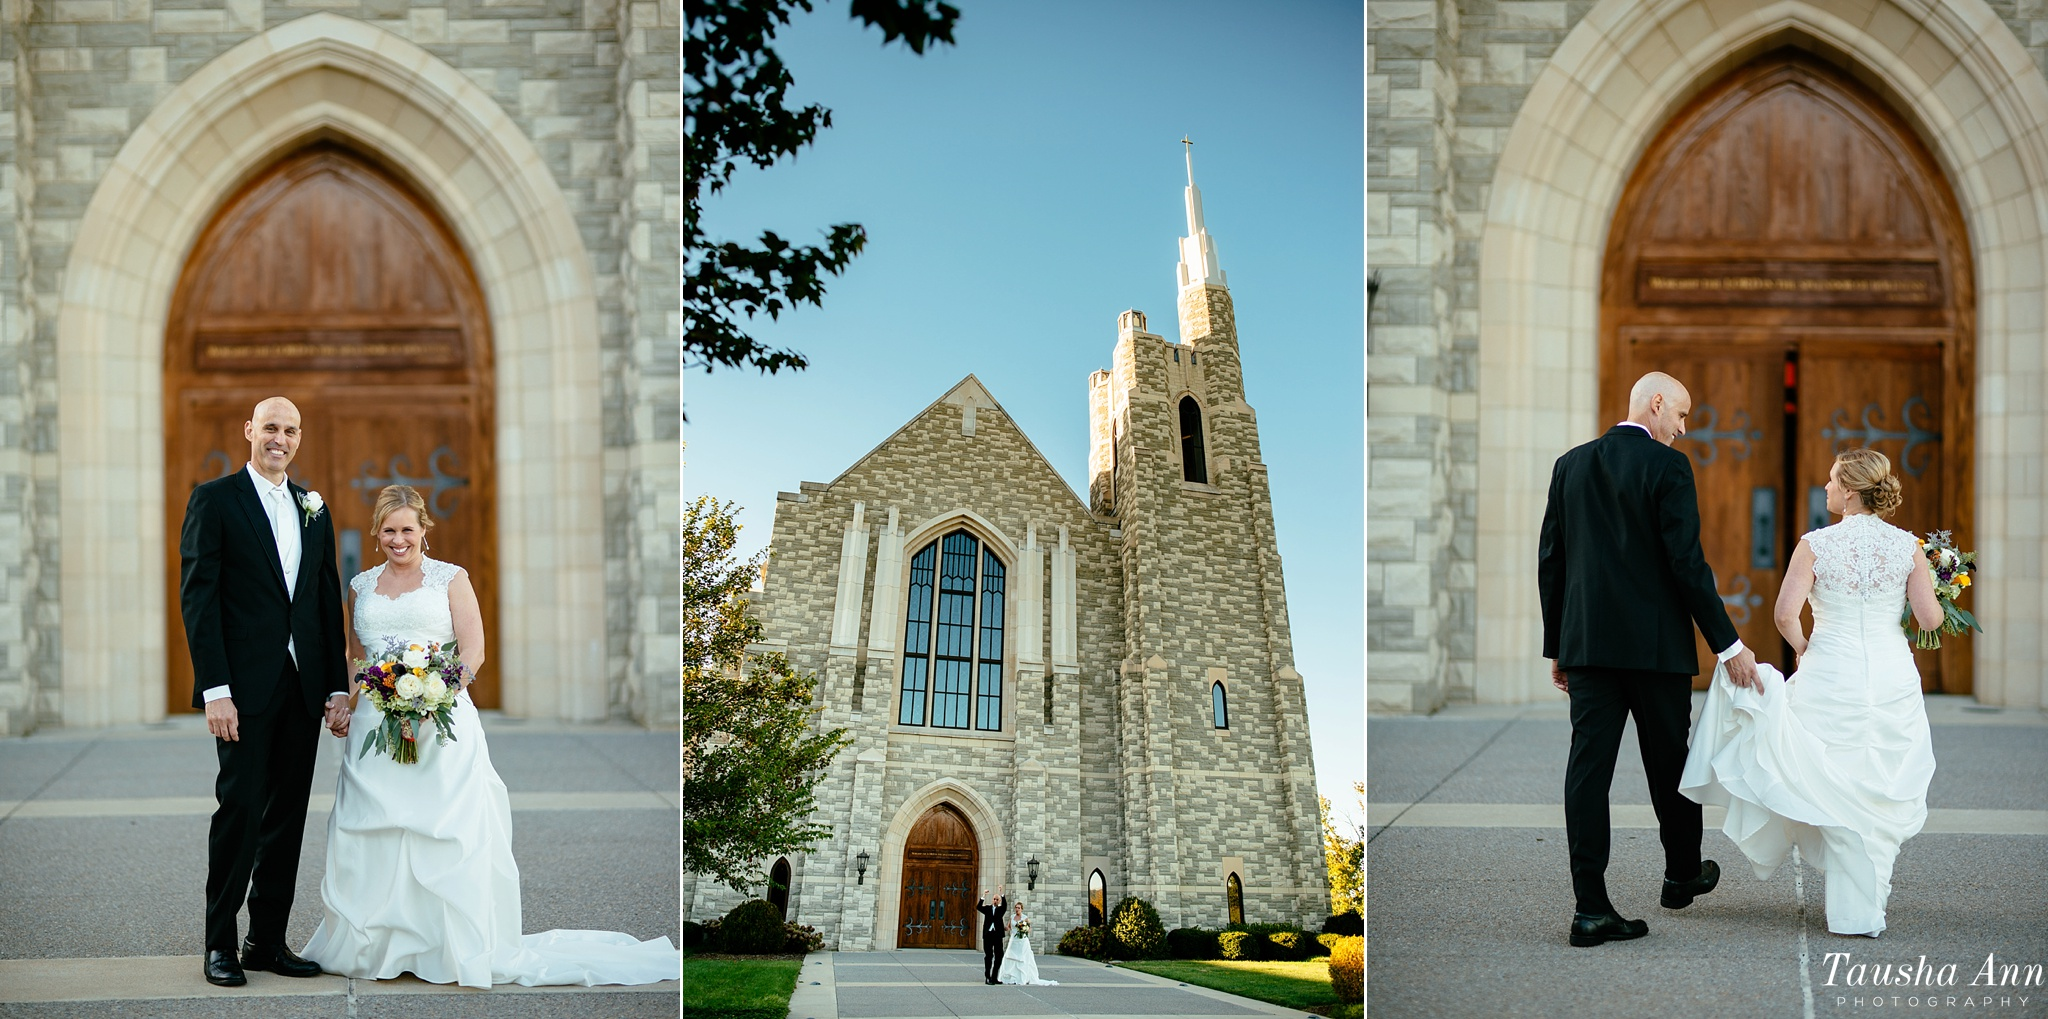 Portraits of Bride and Groom in front of Covenant Presbyterian in Nashville TN